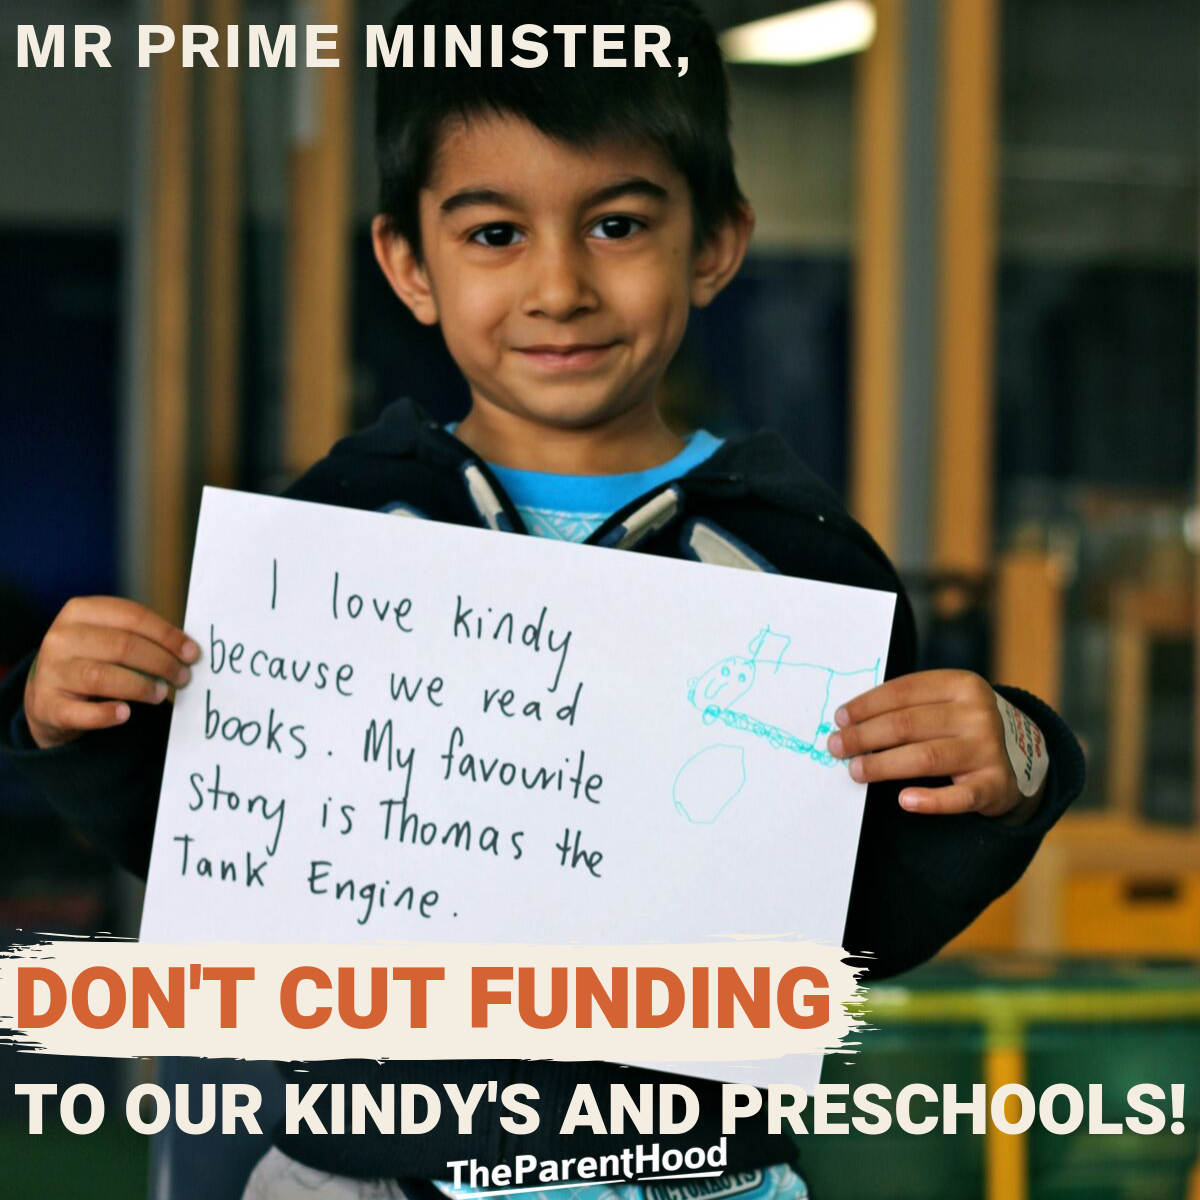 Mr Prime Minister, don't cut funding to preschool!